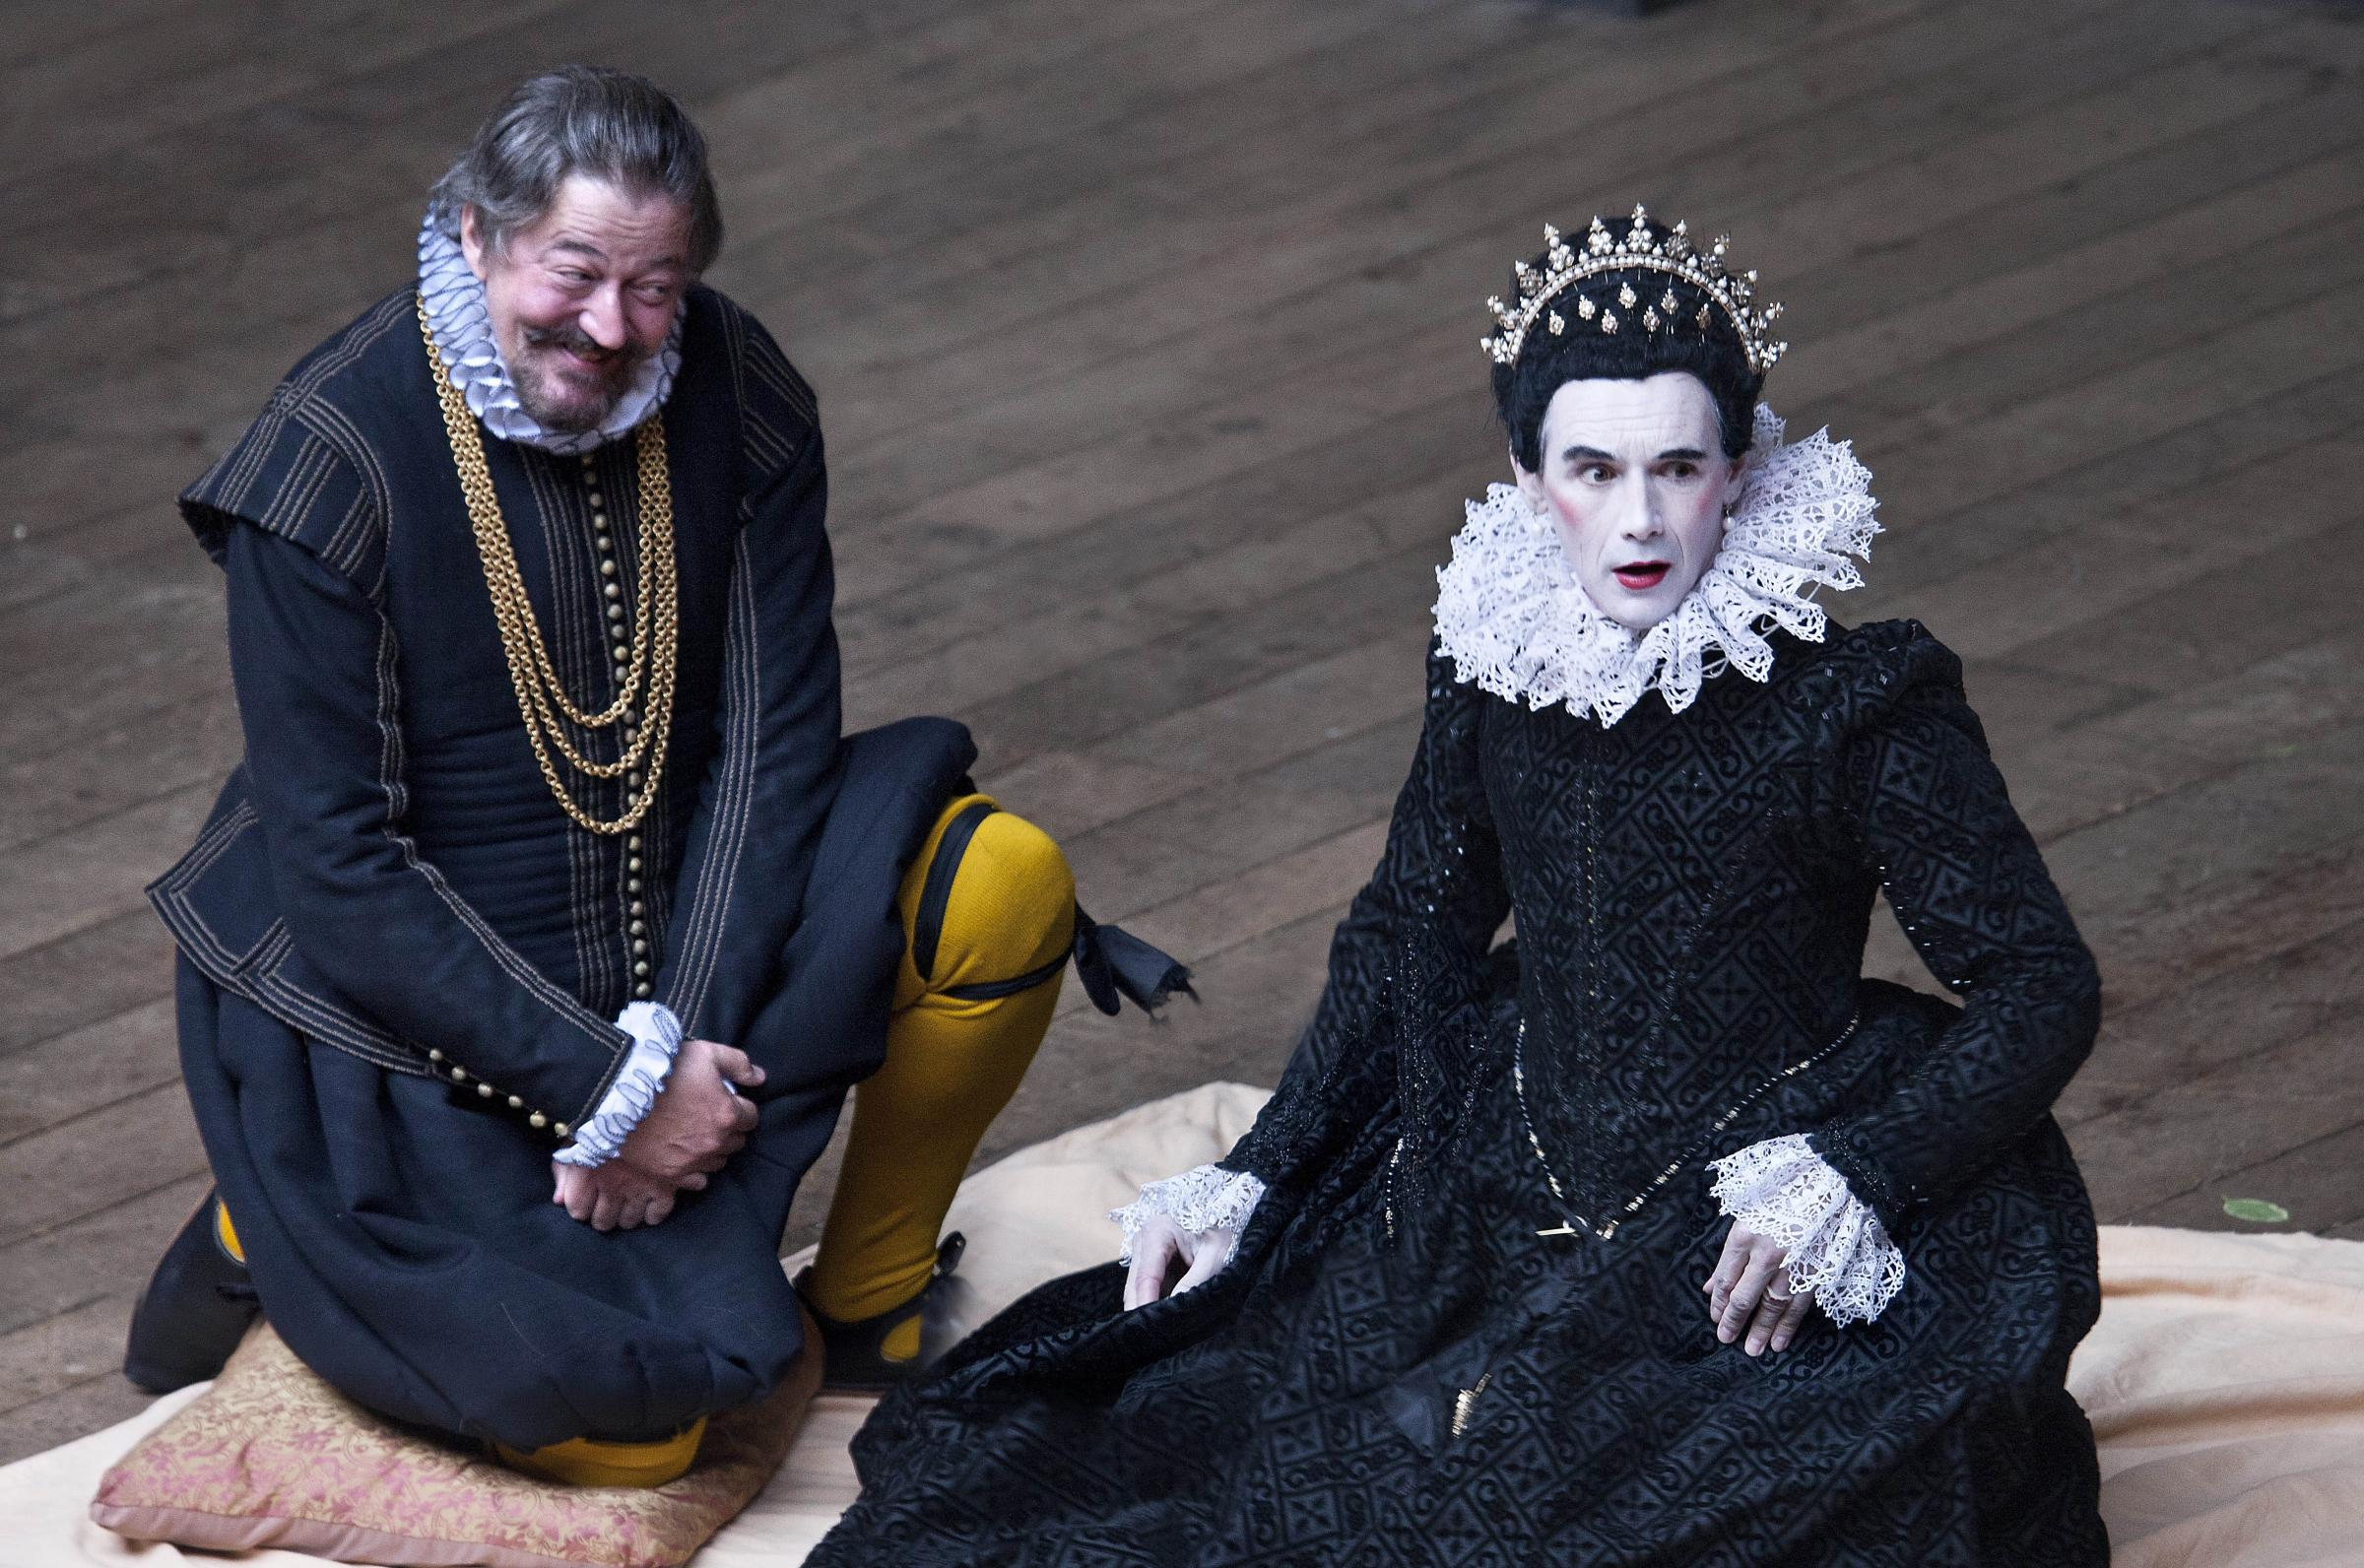 The Globe Theatre production of Twelfth Night, featuring Stephen Fry